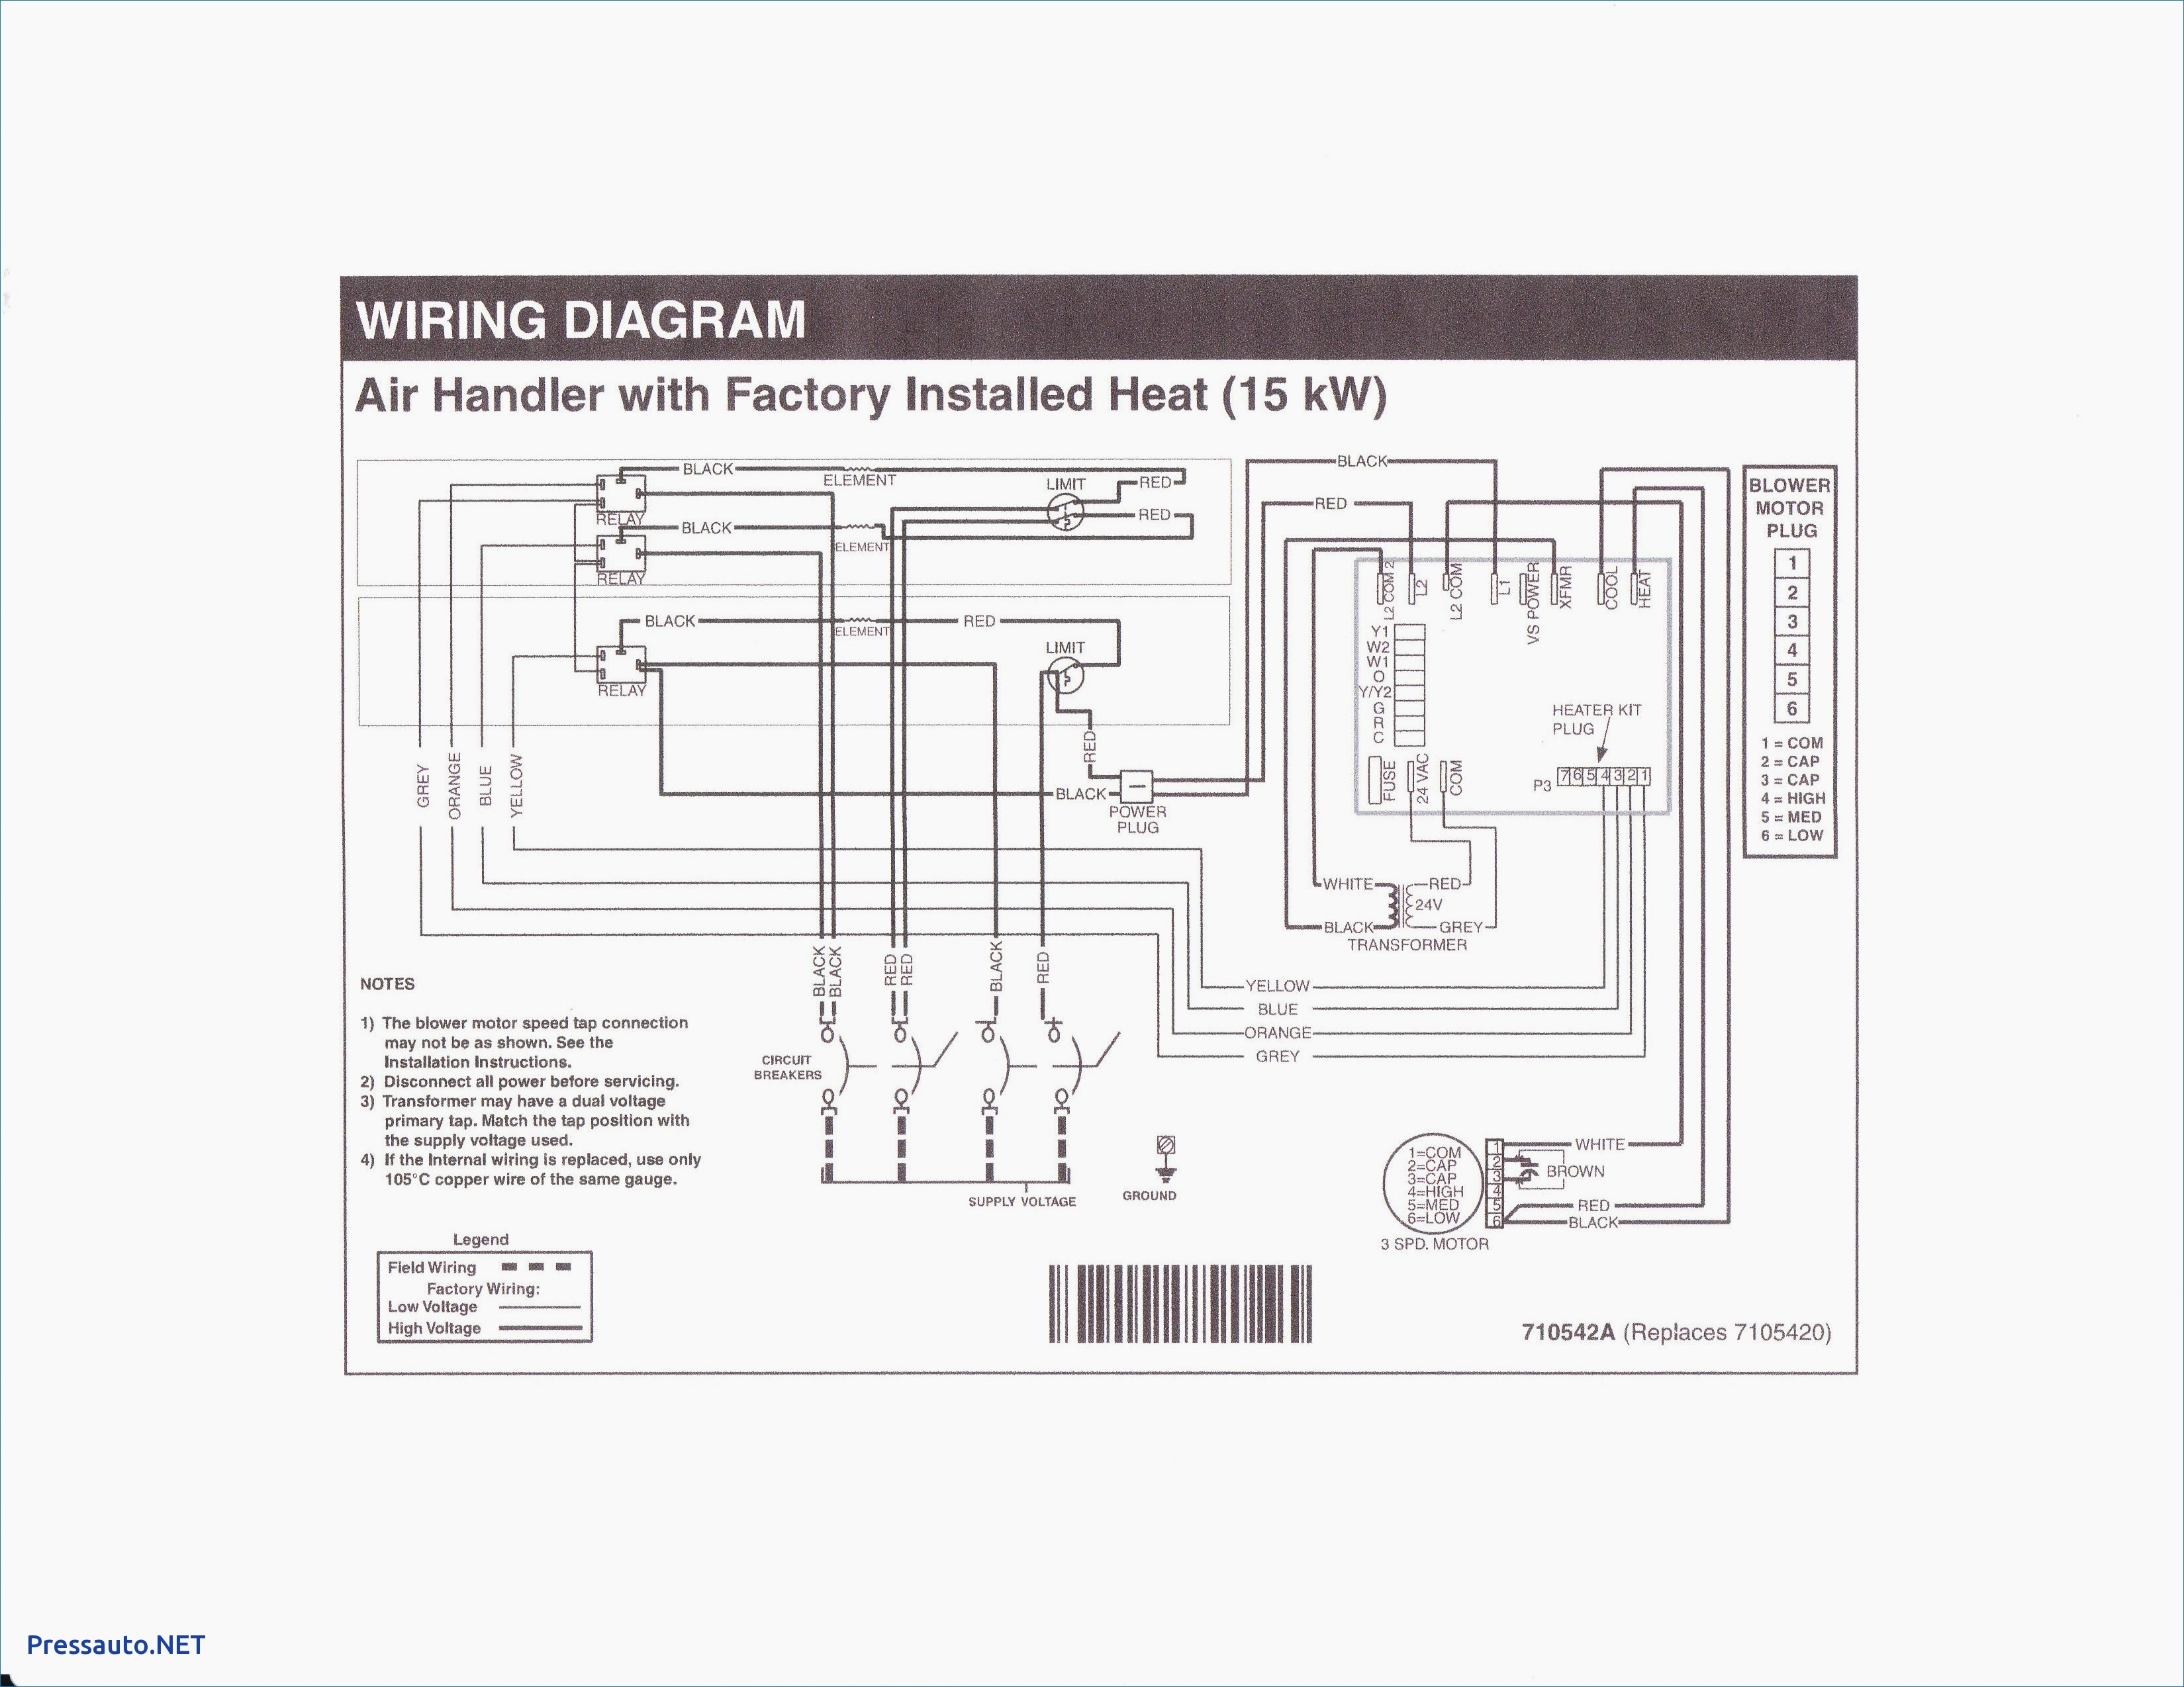 furnace exhaust schematic, furnace diagrams, smoke detectors schematic, furnace motor schematic, furnace fan schematic, on furnace wiring schematic drawings